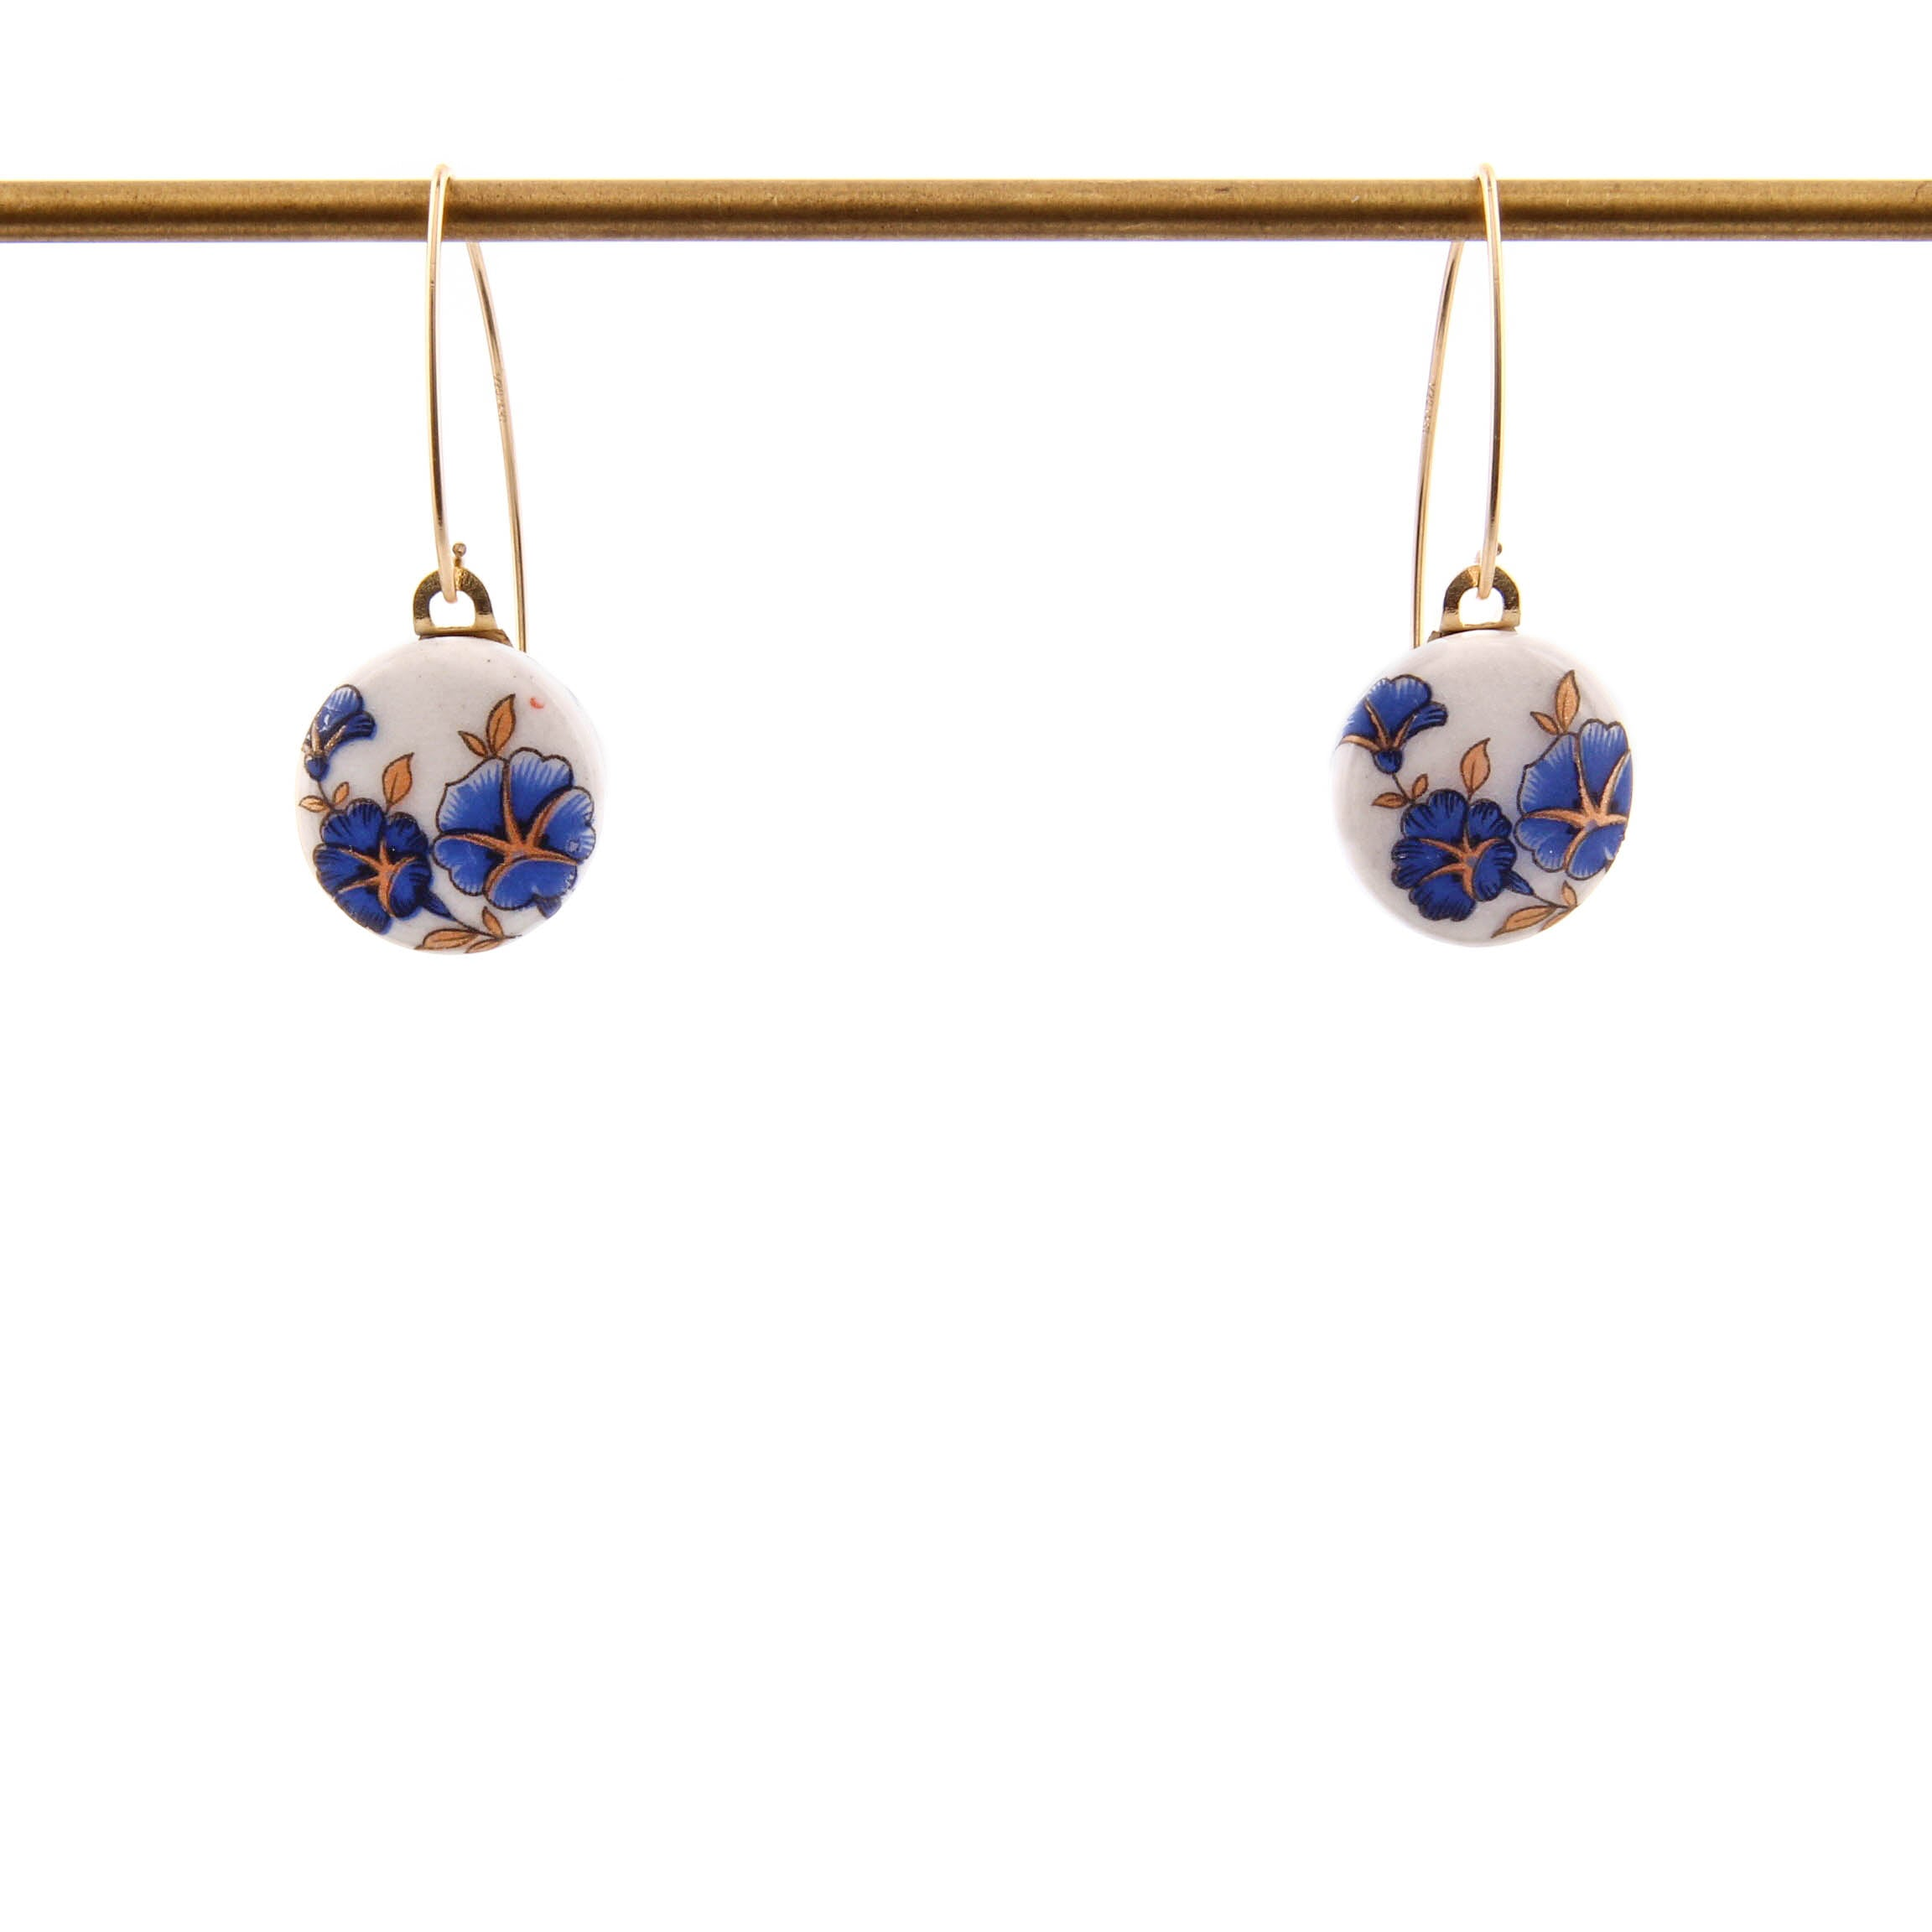 Melanie Sherman, Blue Flowers on White Porcelain Dangle Earrings